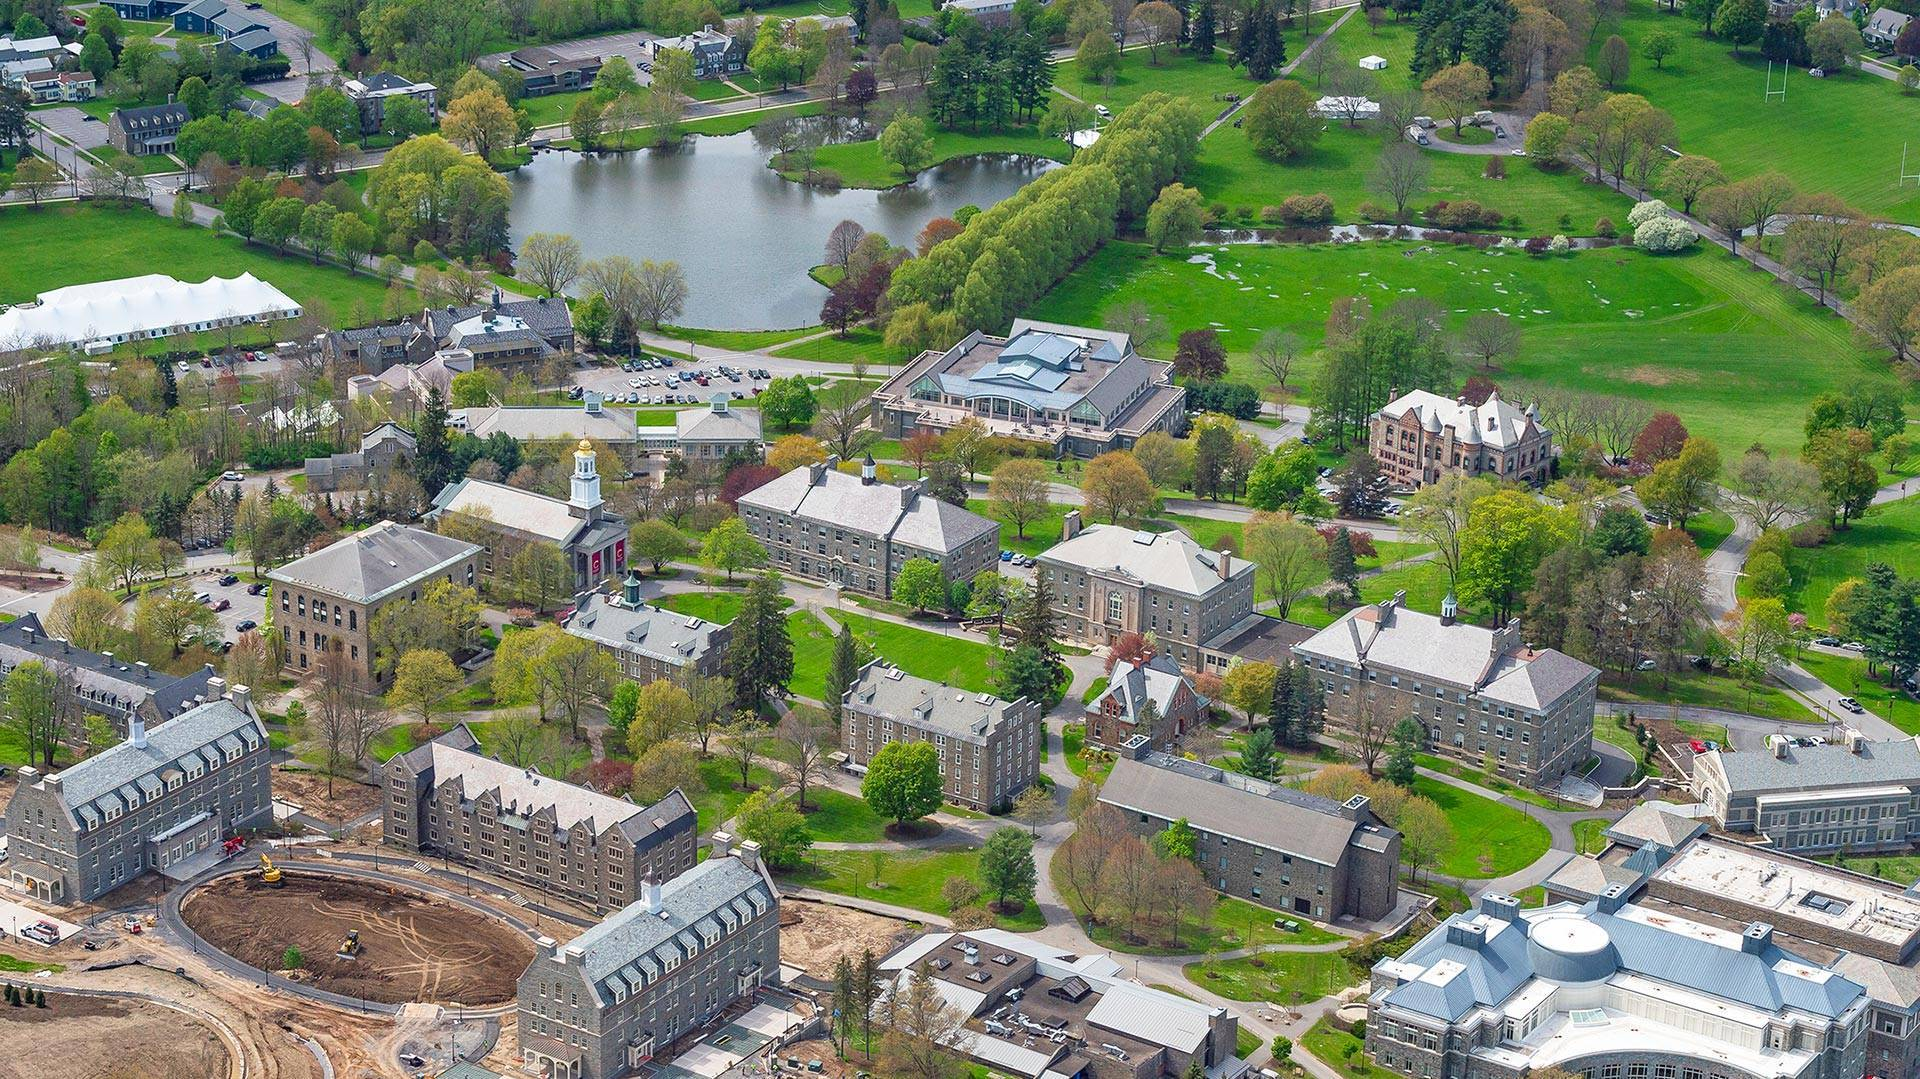 Aerial view of Colgate's campus